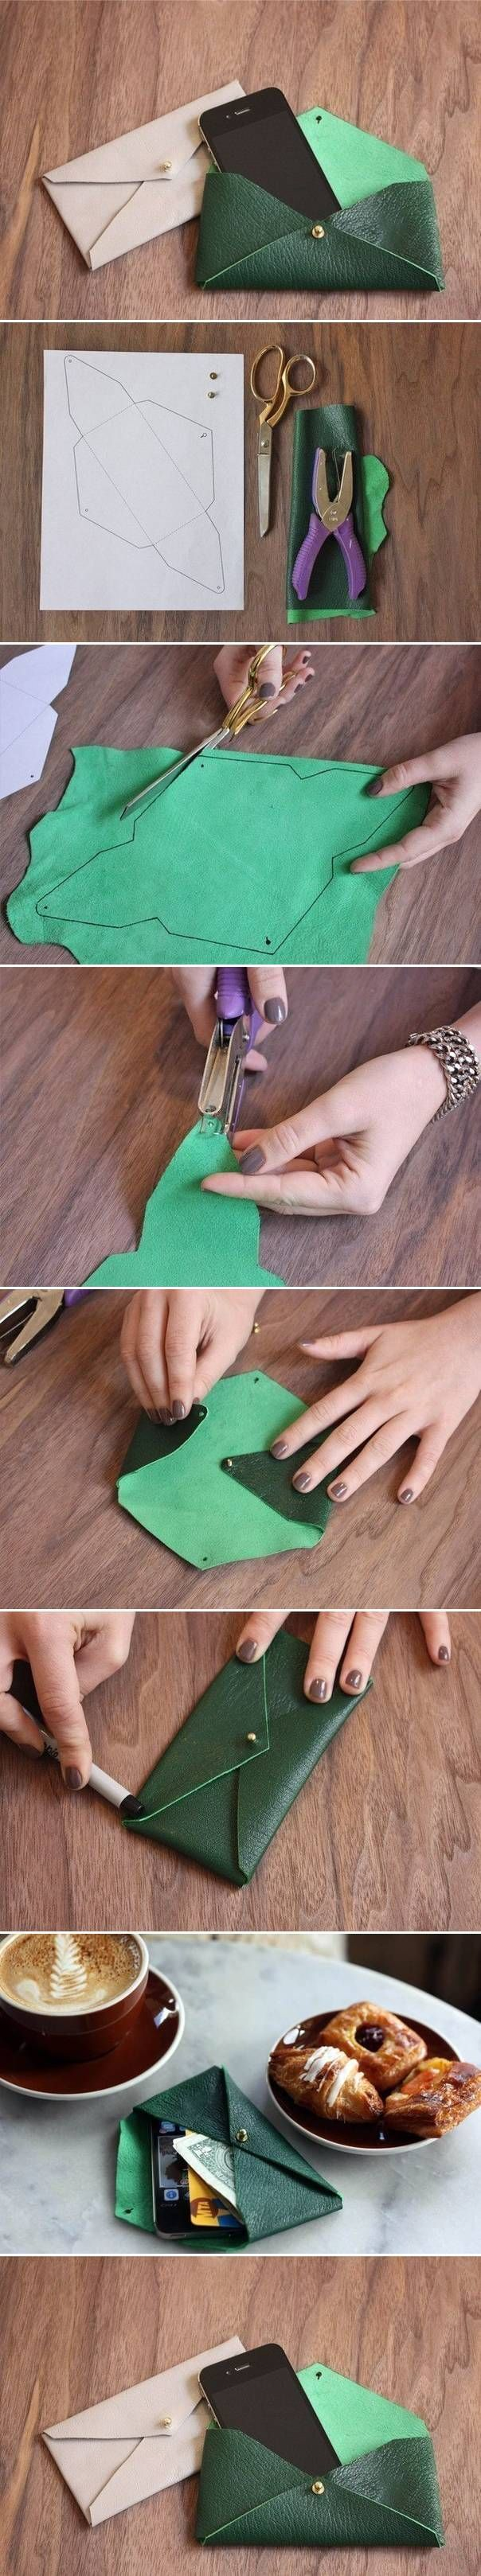 DIY Leather Envelope Case, so cute! <3